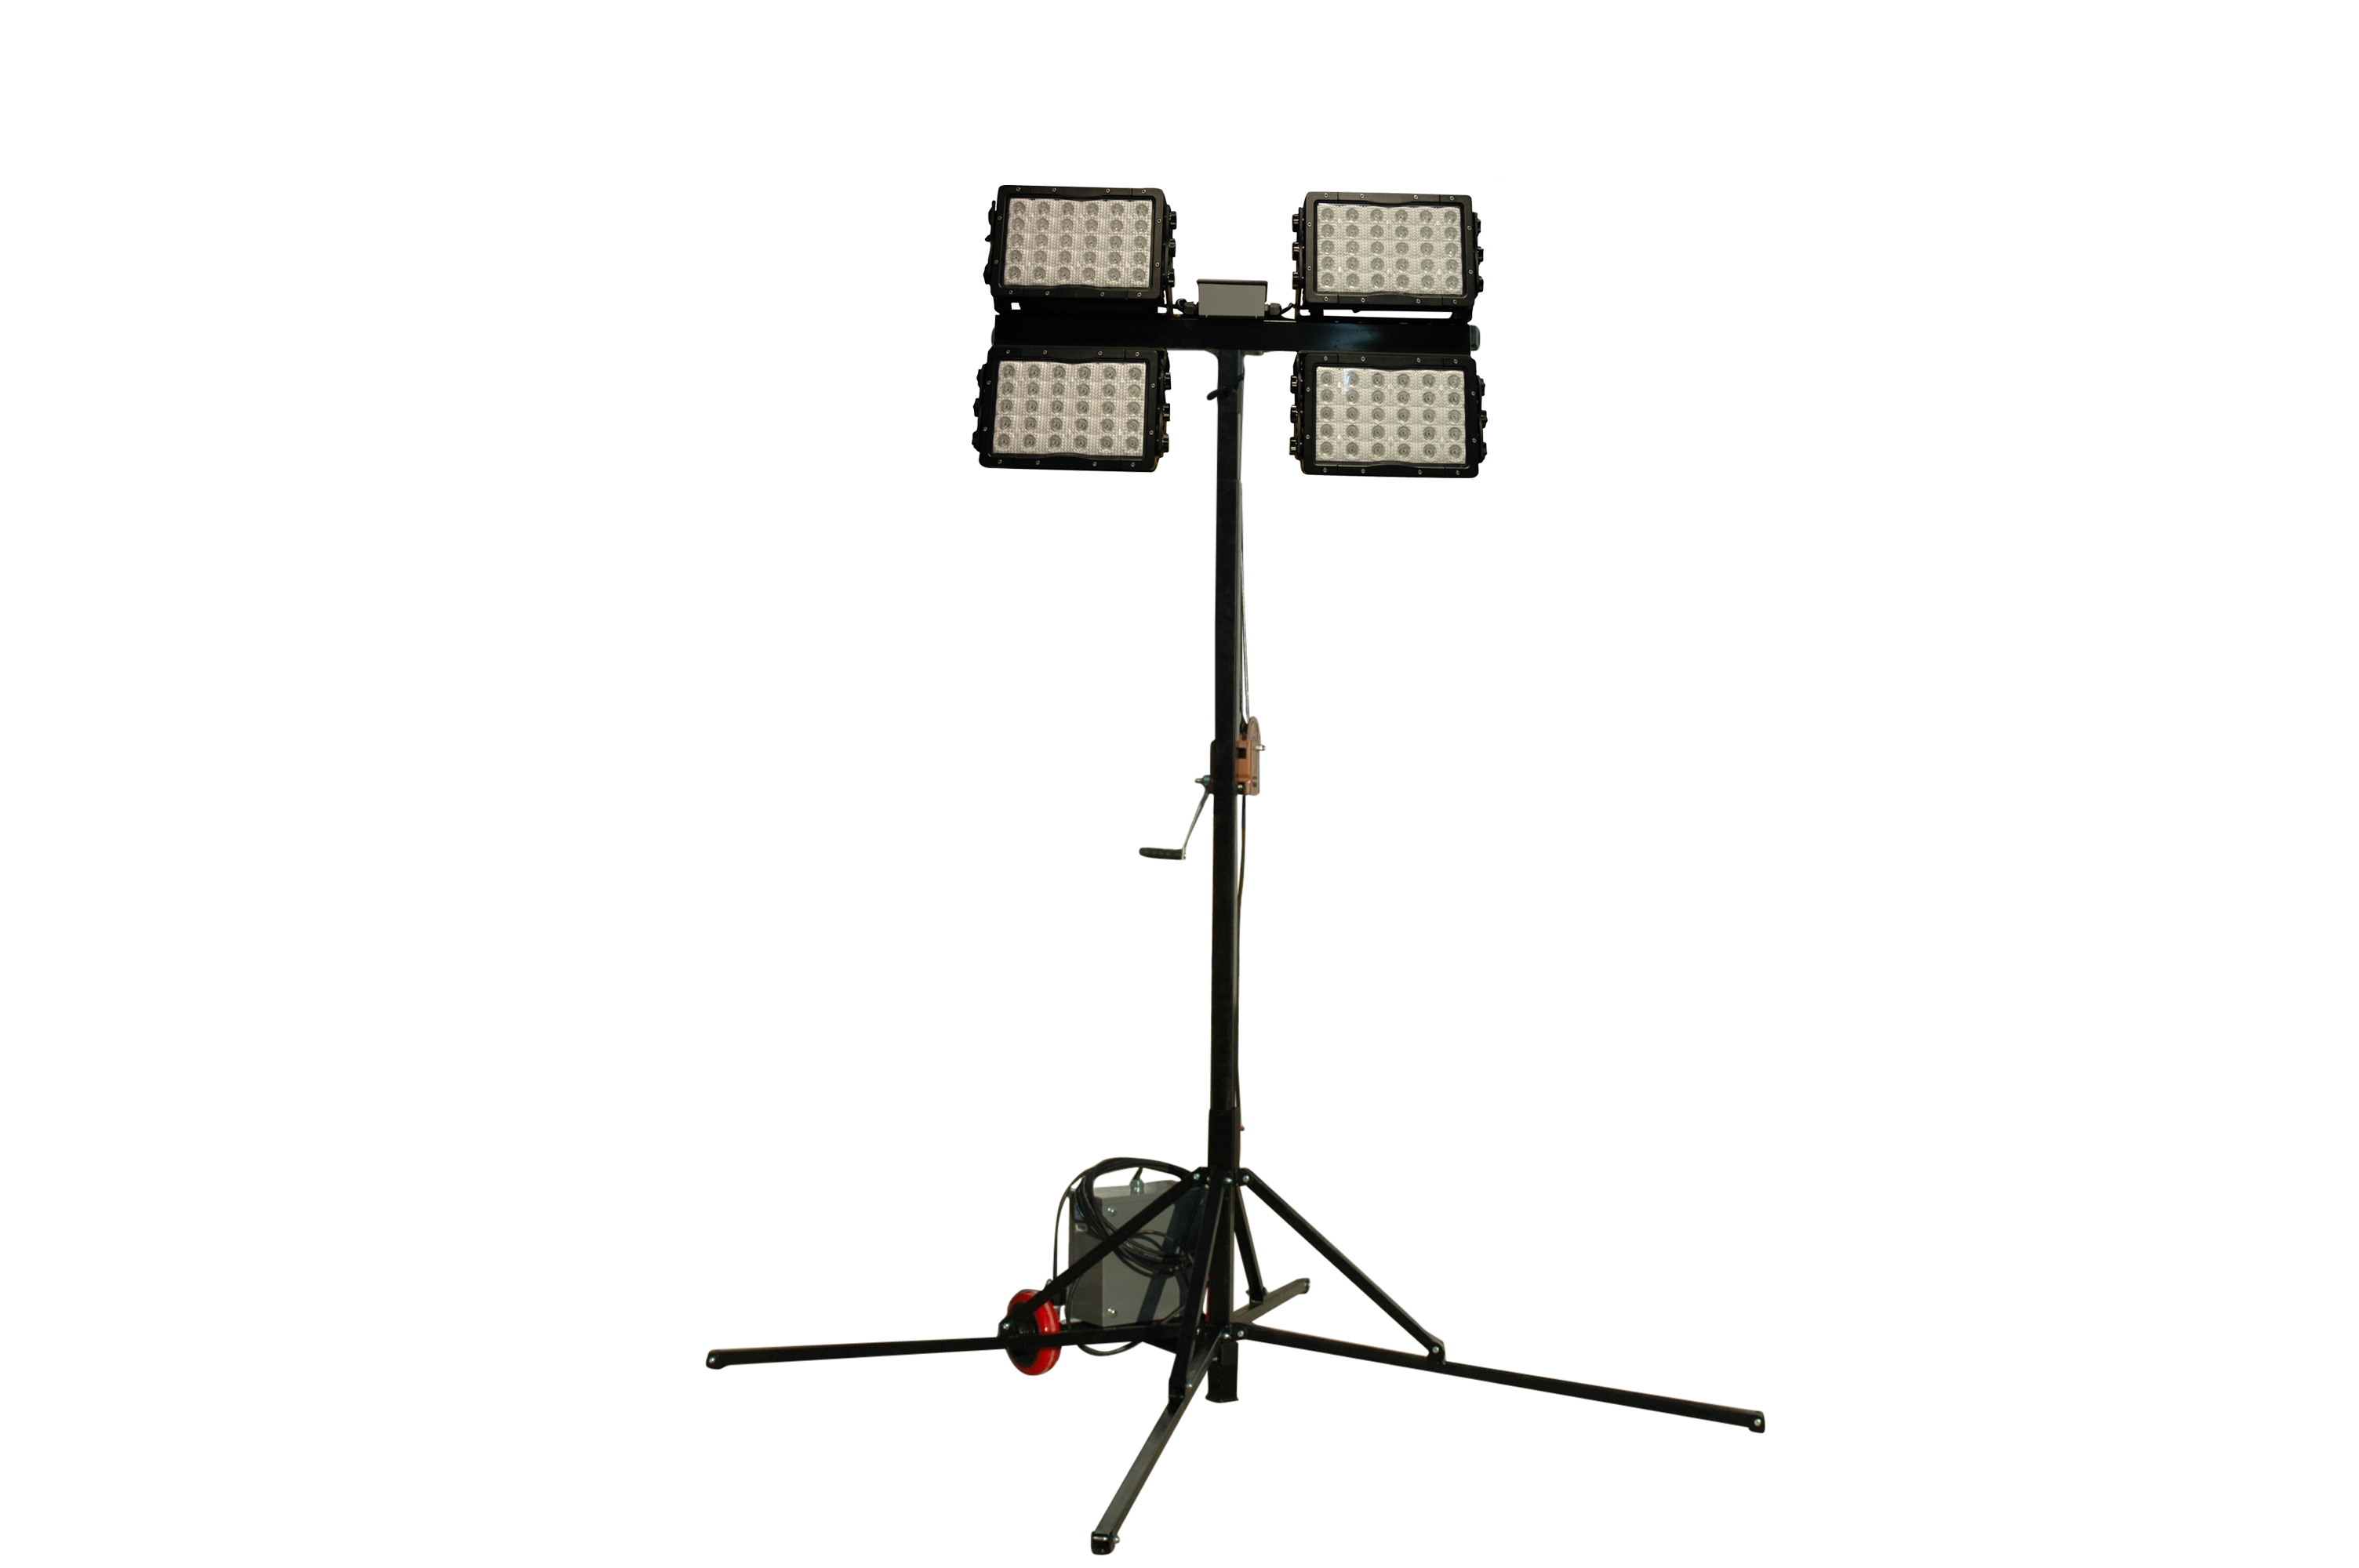 Larson Electronics Releases Mini Light Tower With High